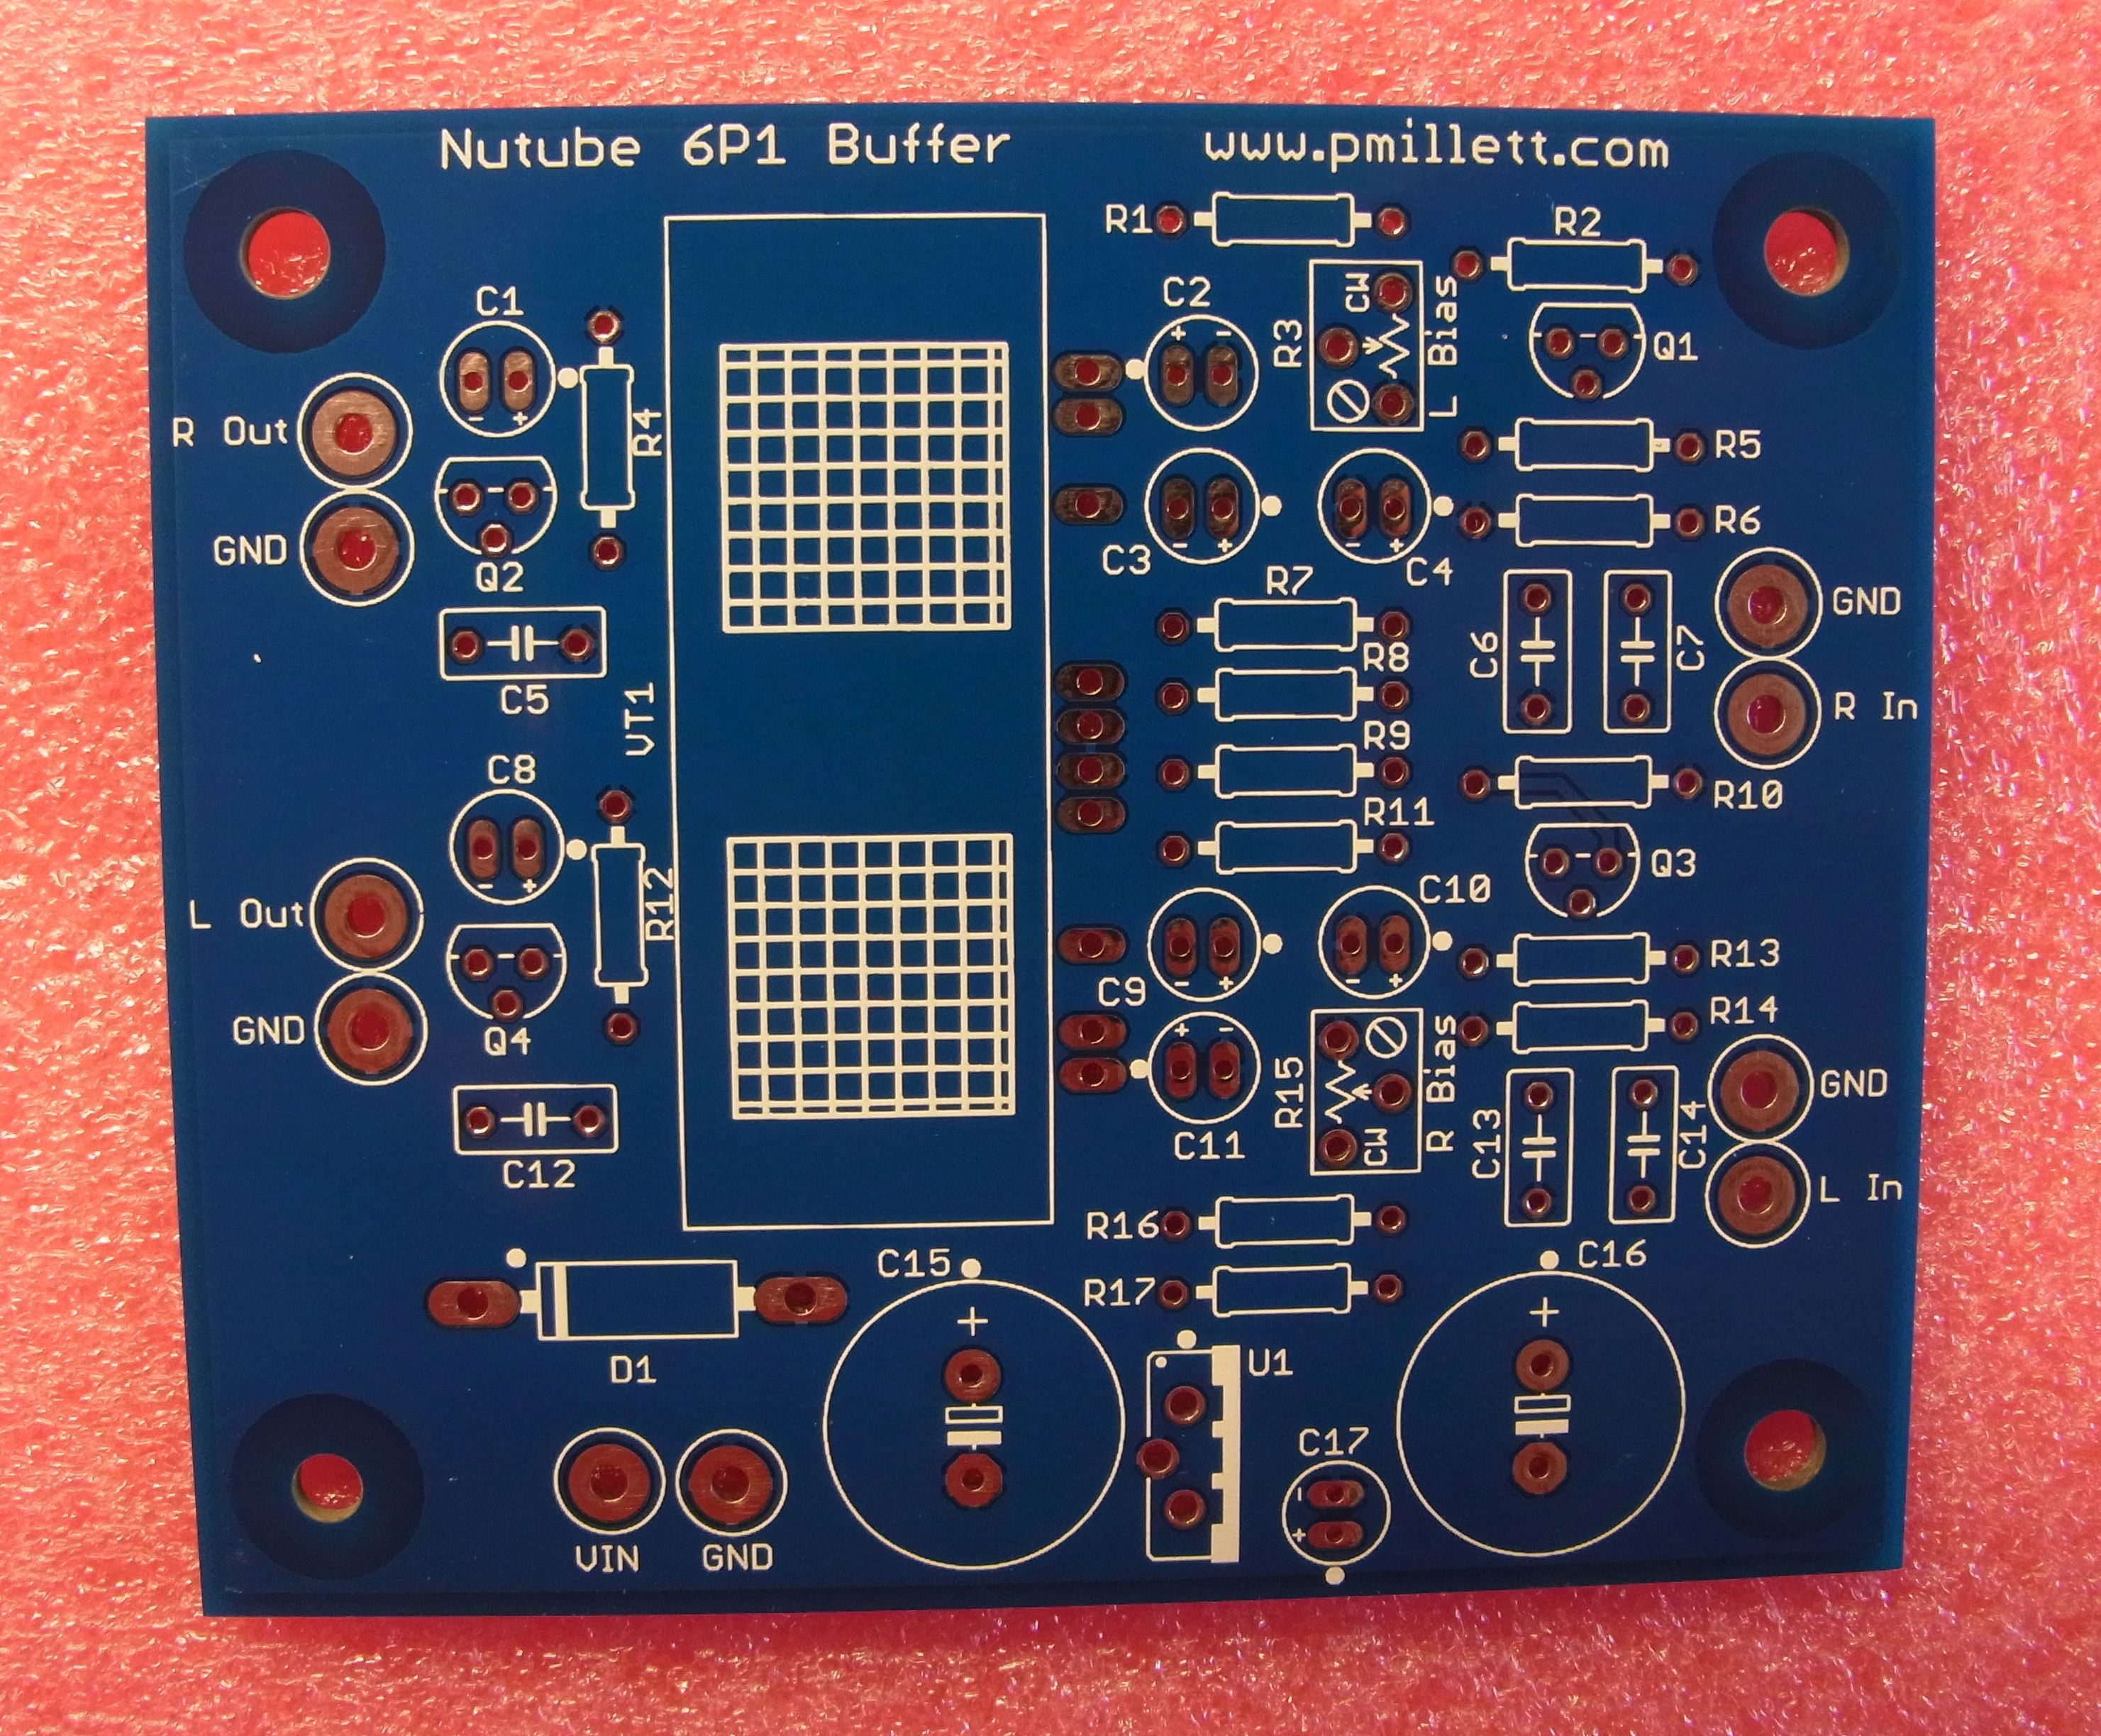 Nutube 6p1 Buffer Pcb How To Make A Simple Circuit Board The Idea Here Is Implement Single Stage Amplifier Using So People Can Evaluate It In An Audio System